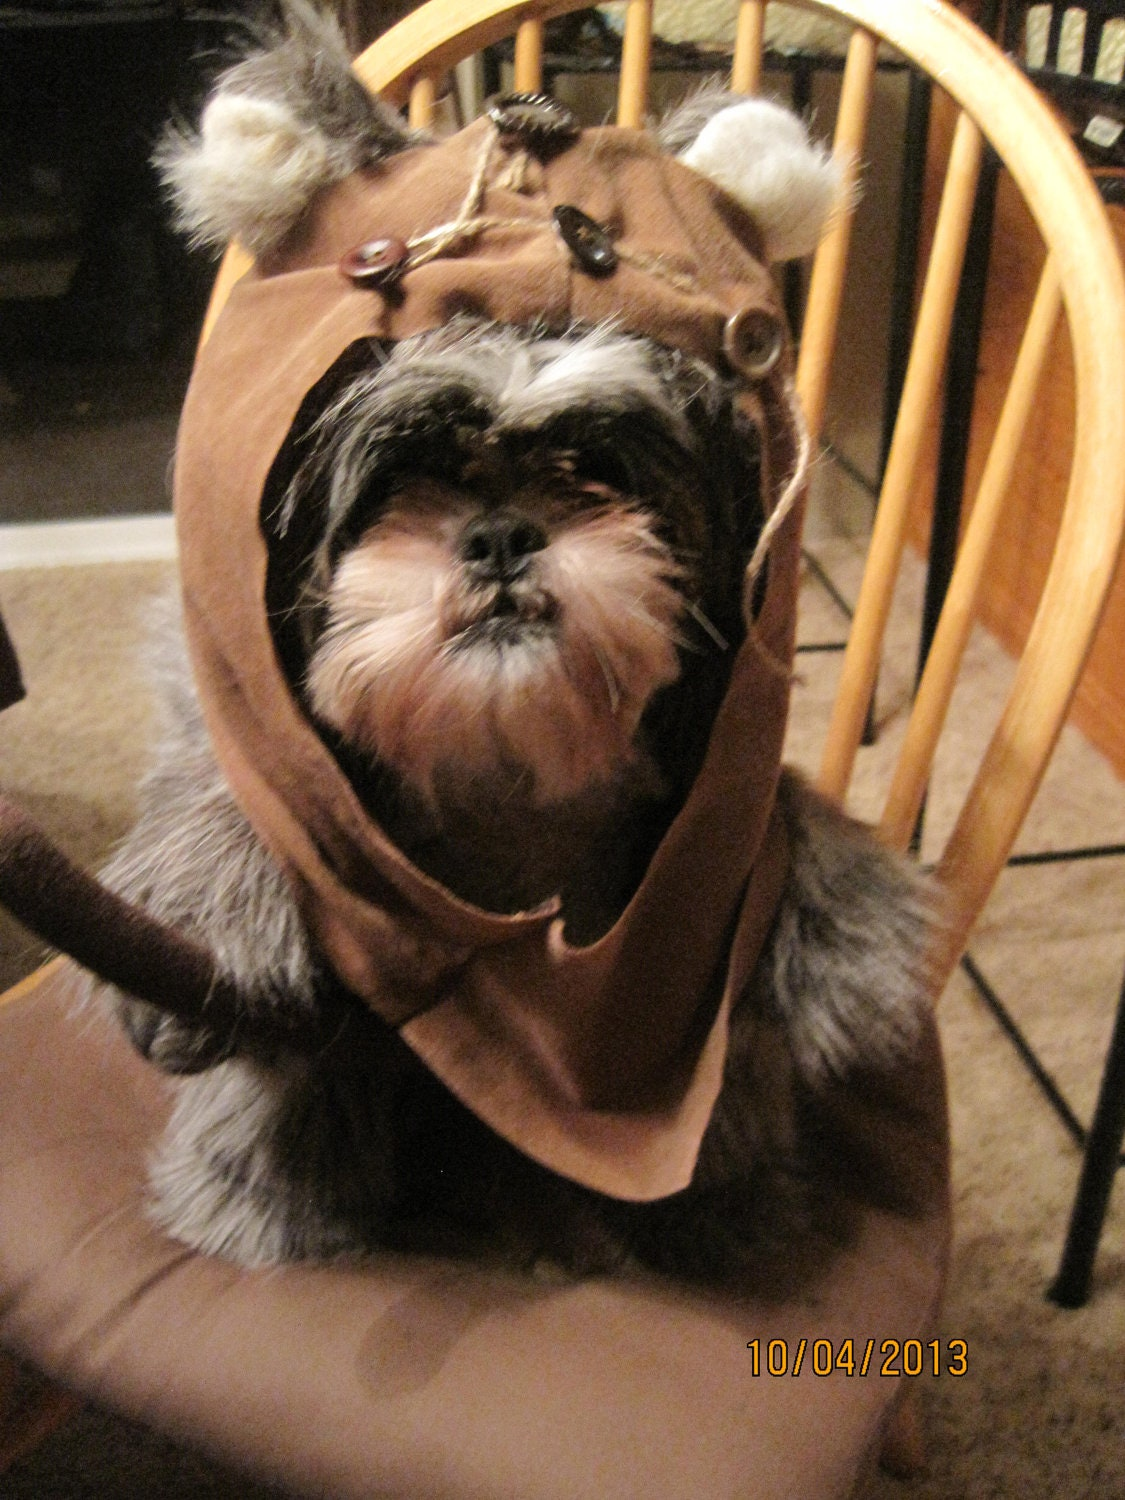 ewok hood fur dog halloween costume size large. Black Bedroom Furniture Sets. Home Design Ideas